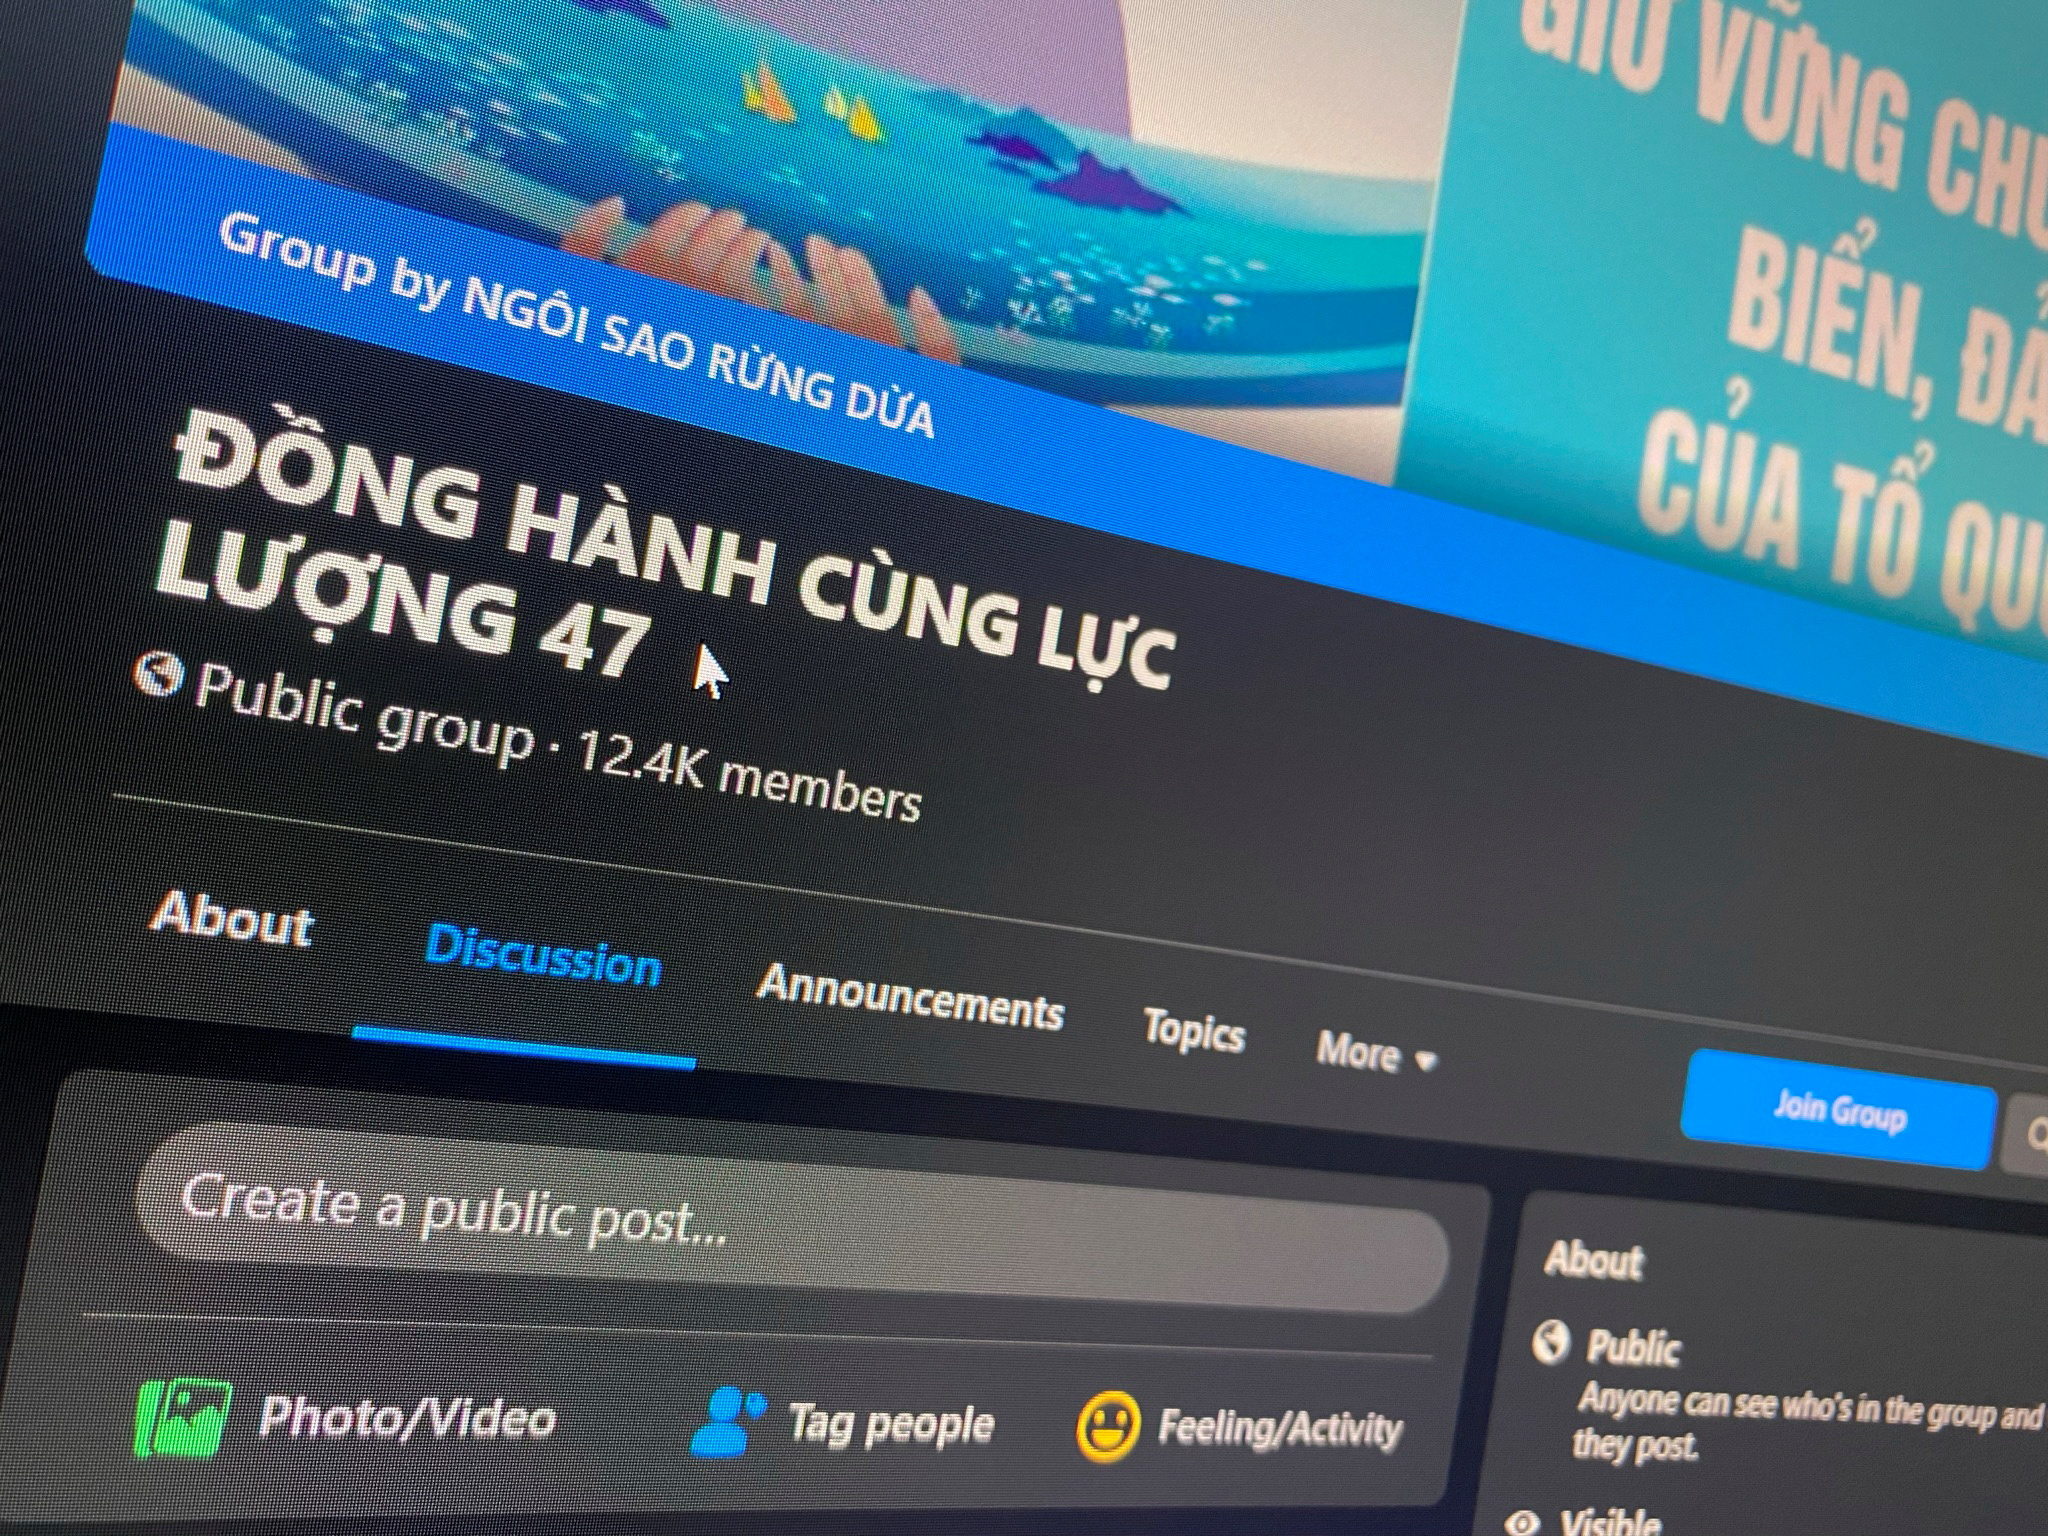 A Facebook page of a group called 'Keeping company with Force 47', which was identified by Vietnamese state media as being controlled by 'Force 47' cyber troops, is displayed on screen in this photo taken July 6, 2021 by REUTERS